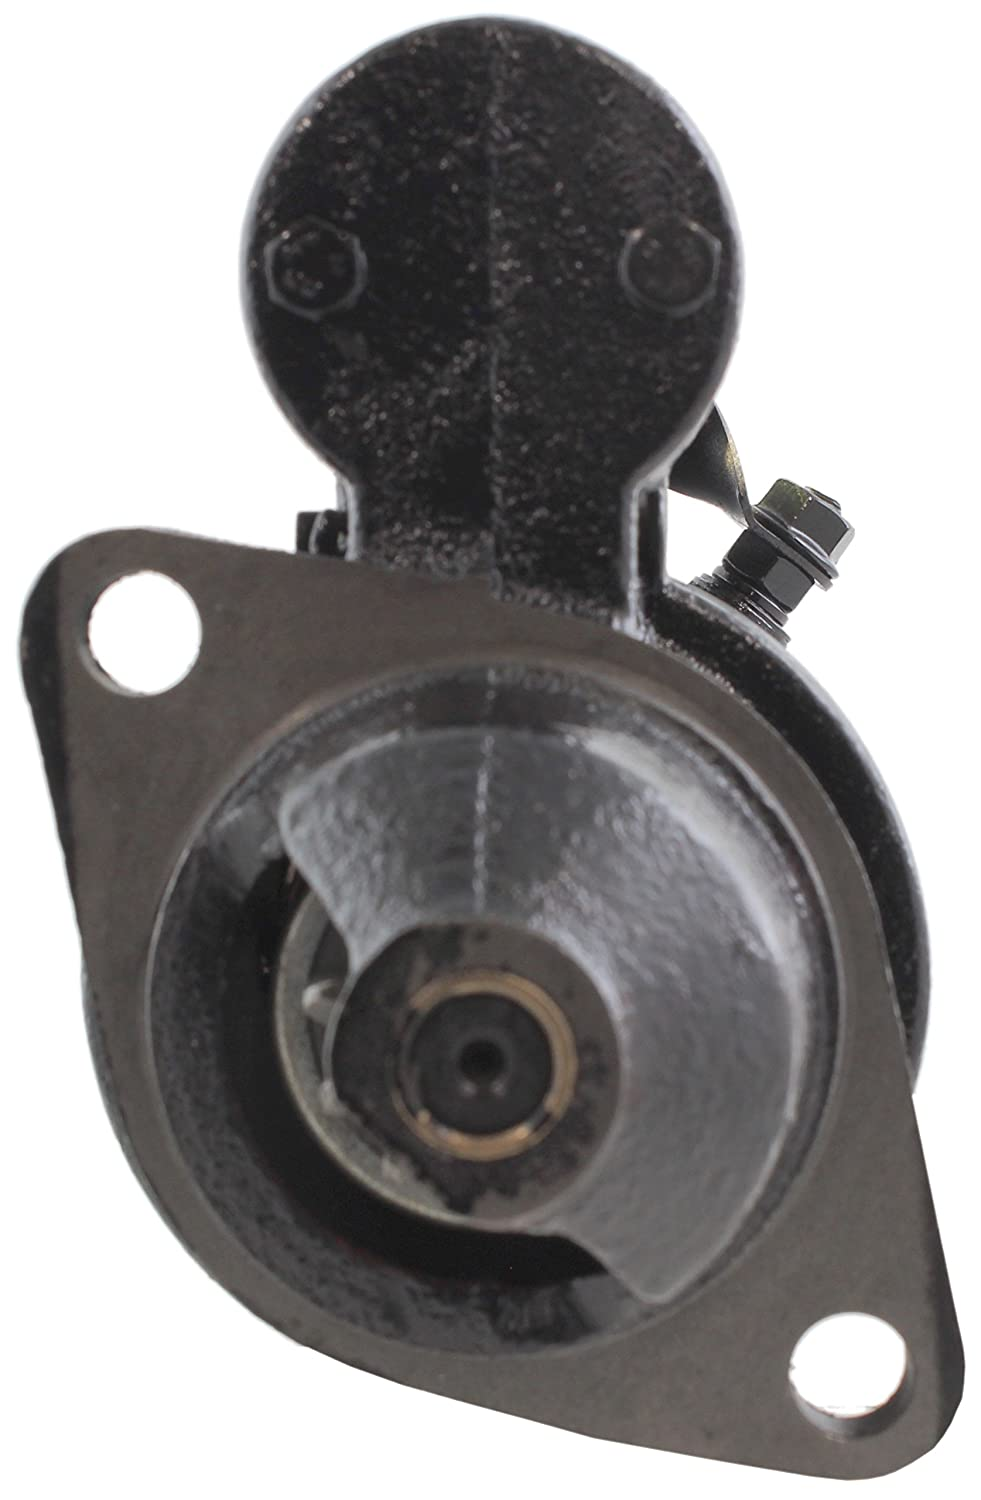 Starter Fits Most Jinma FarmPro Nortrac AgKing Tractors 3 cyl. 28hp YD385  Replaces: QD100C3: Automotive